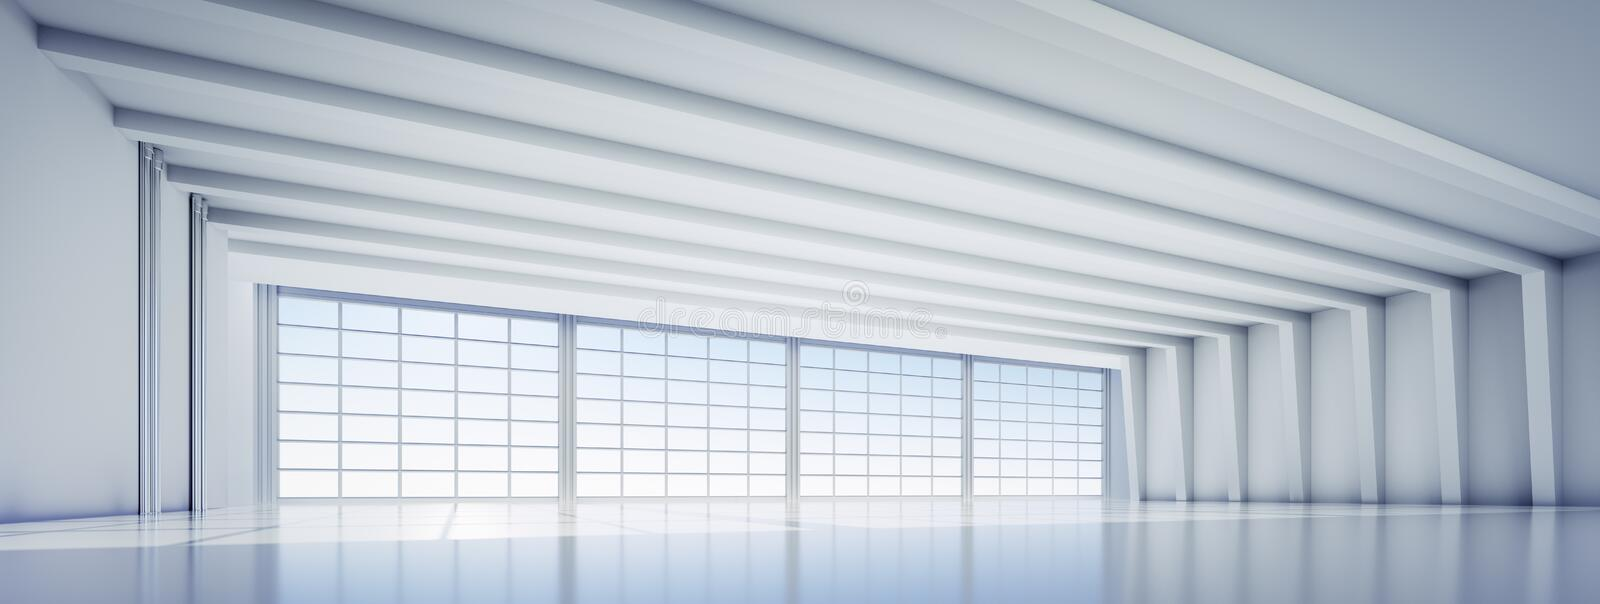 Empty large white industrial warehouse stock photos